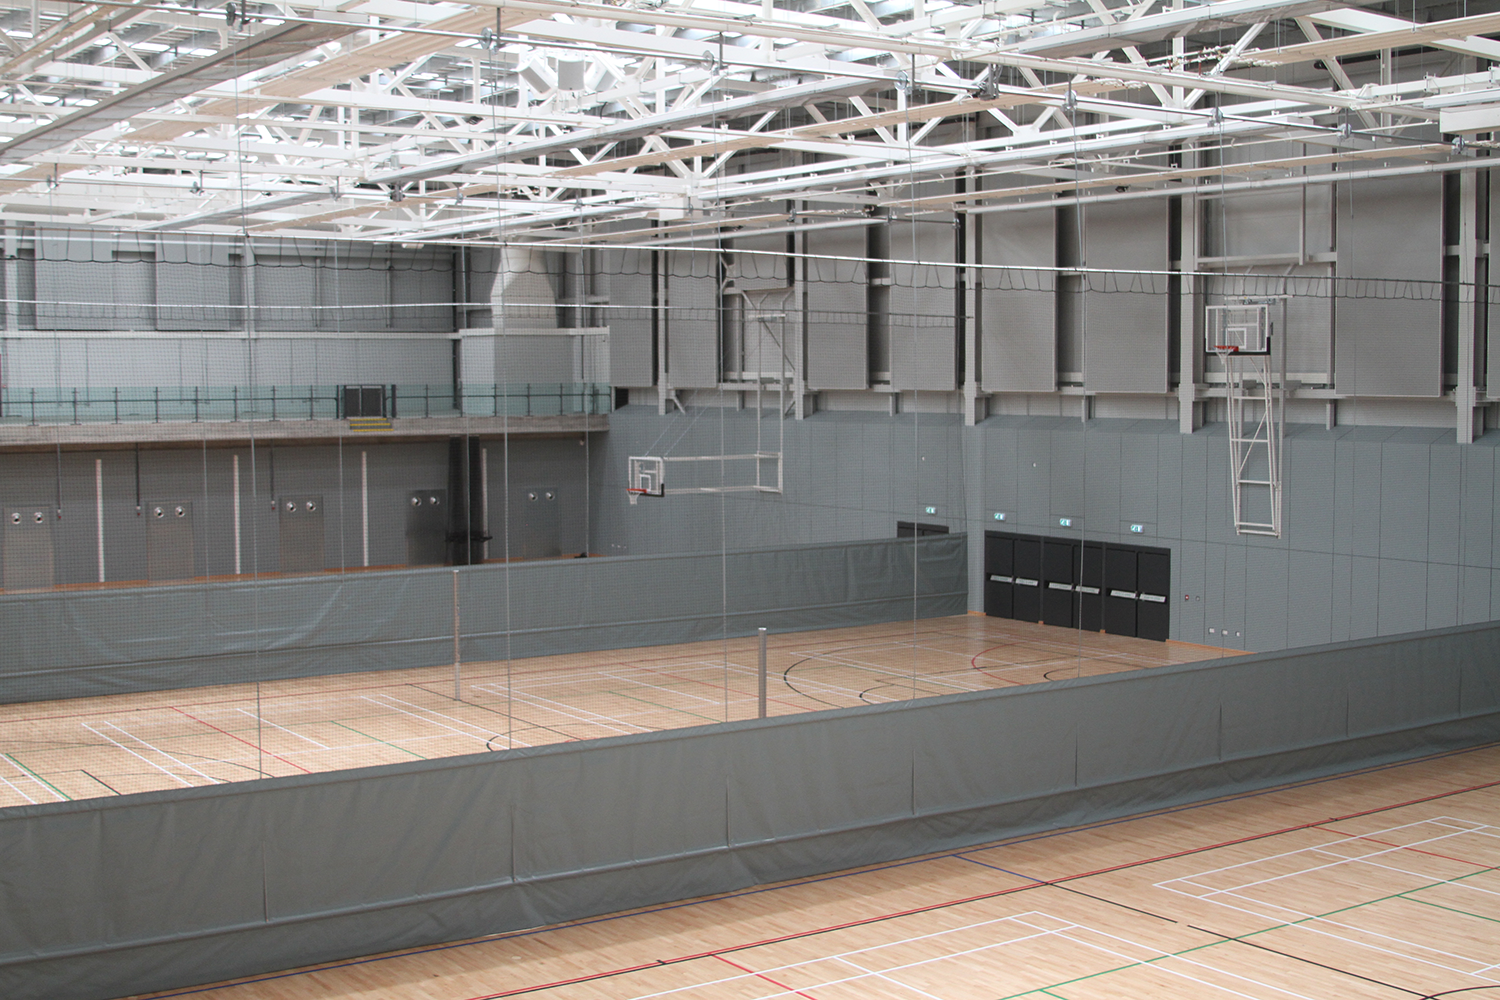 Emirates Arena Basketball Goals & Motorised Dividers by Unisport